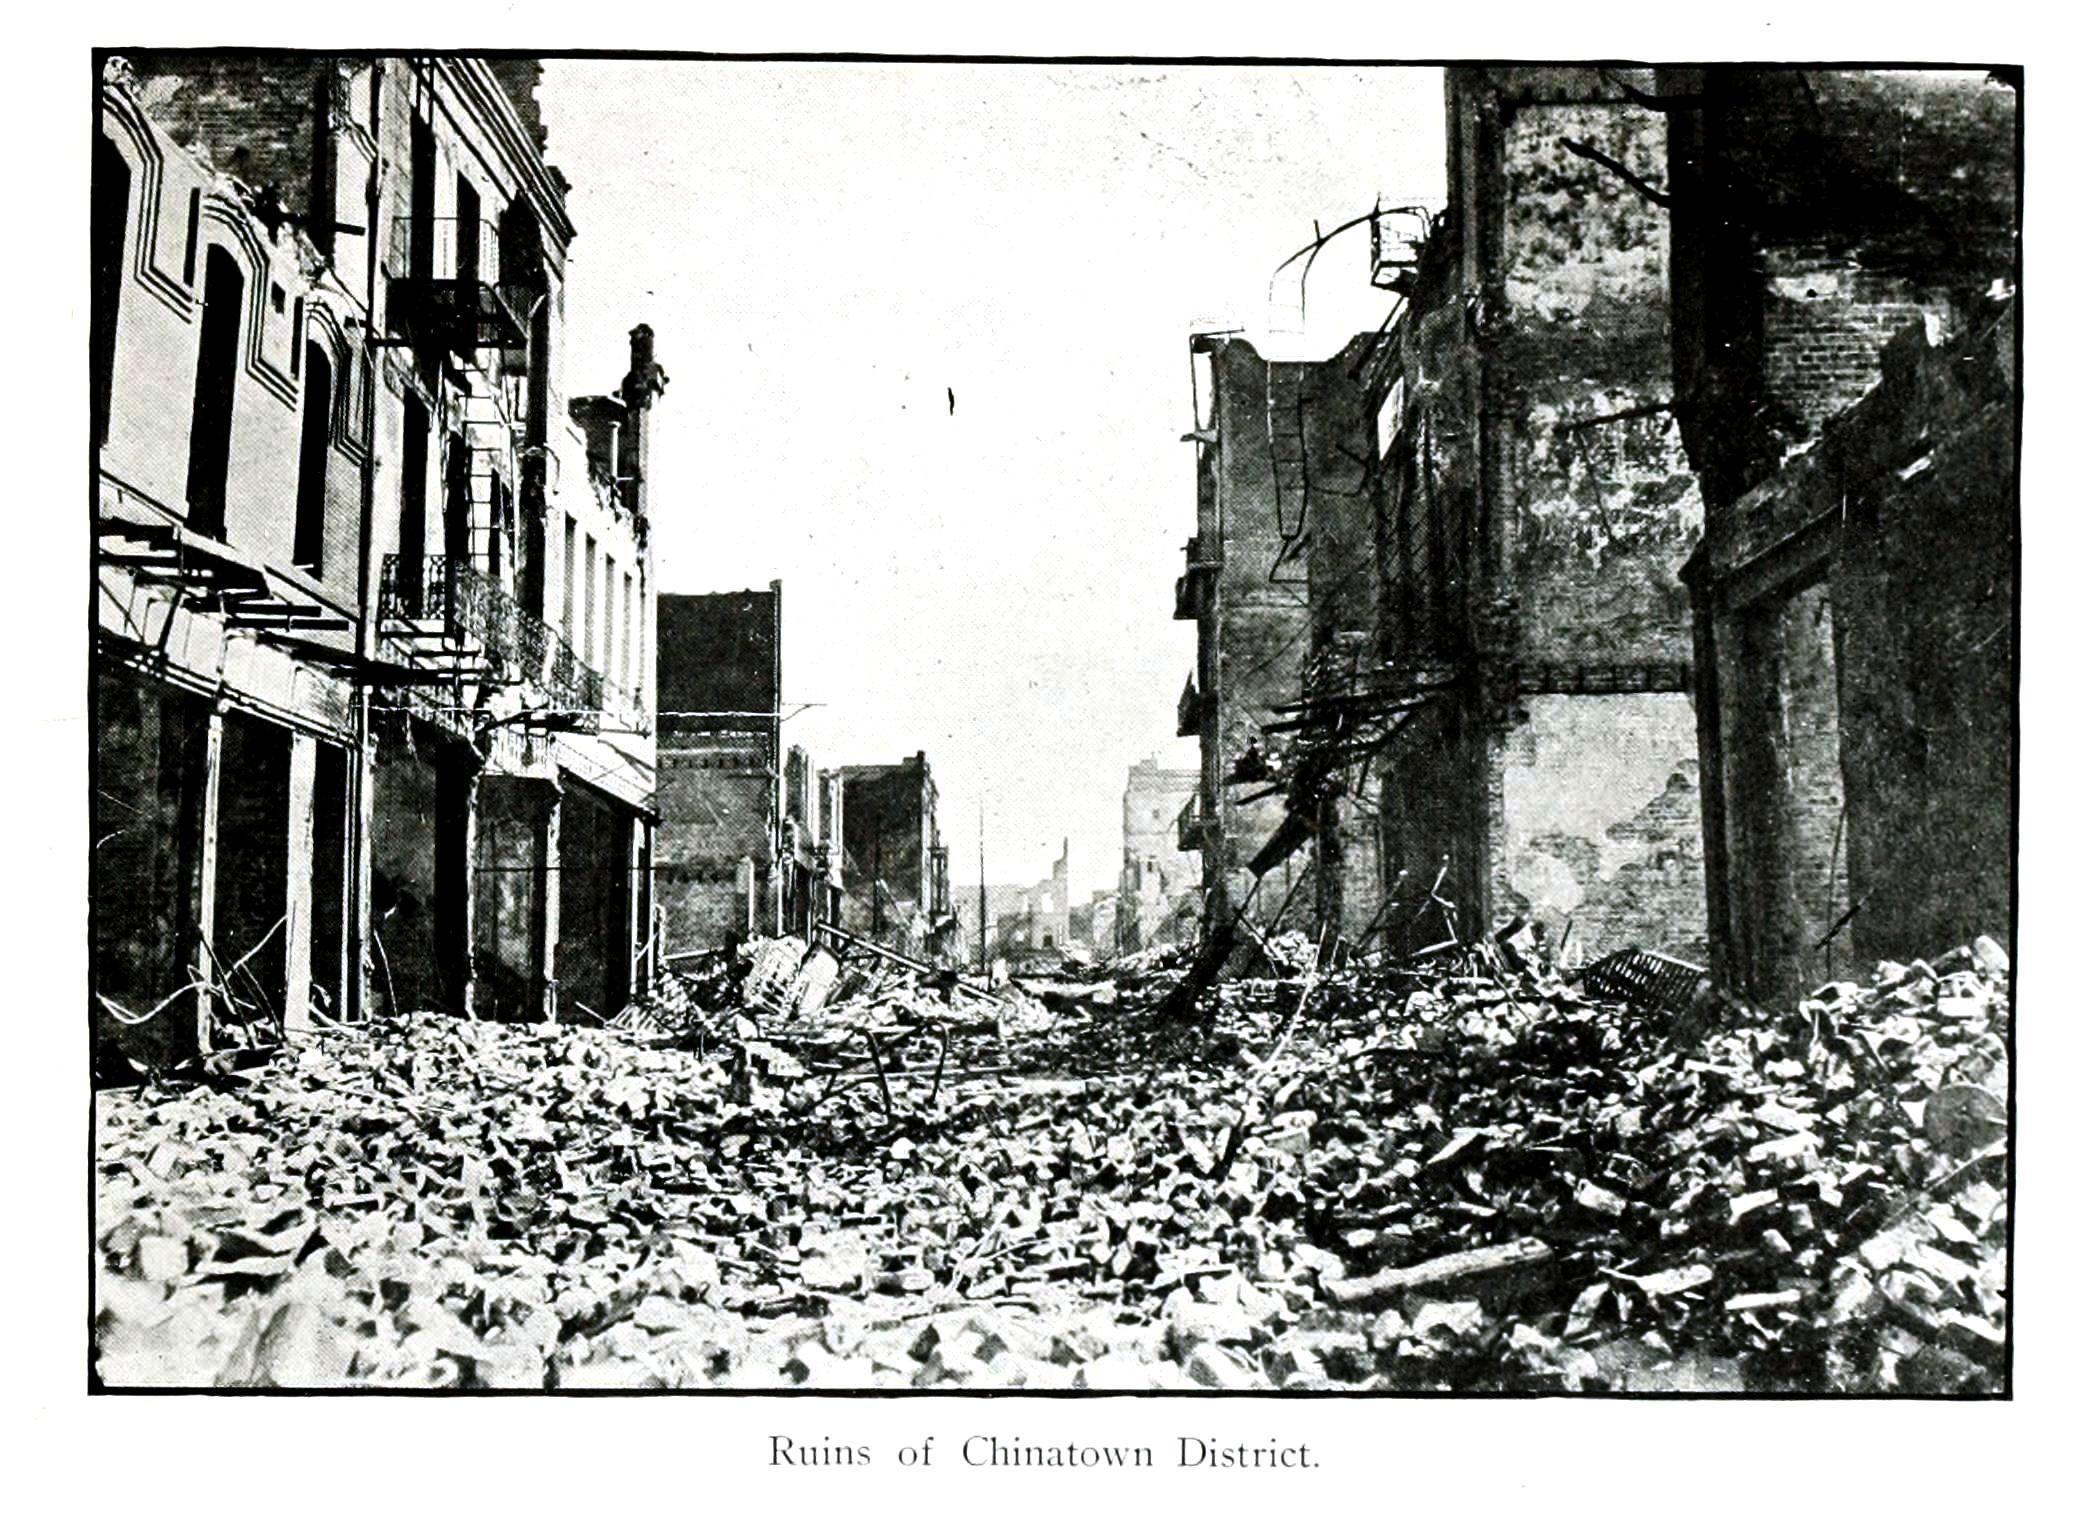 san fransisco fires essay The 1906 san francisco earthquake and subsequent fires killed an estimated 3,000 people and left over half of the city's population homeless around 500 city blocks with 28,000 buildings were destroyed during this devastating natural catastrophe.